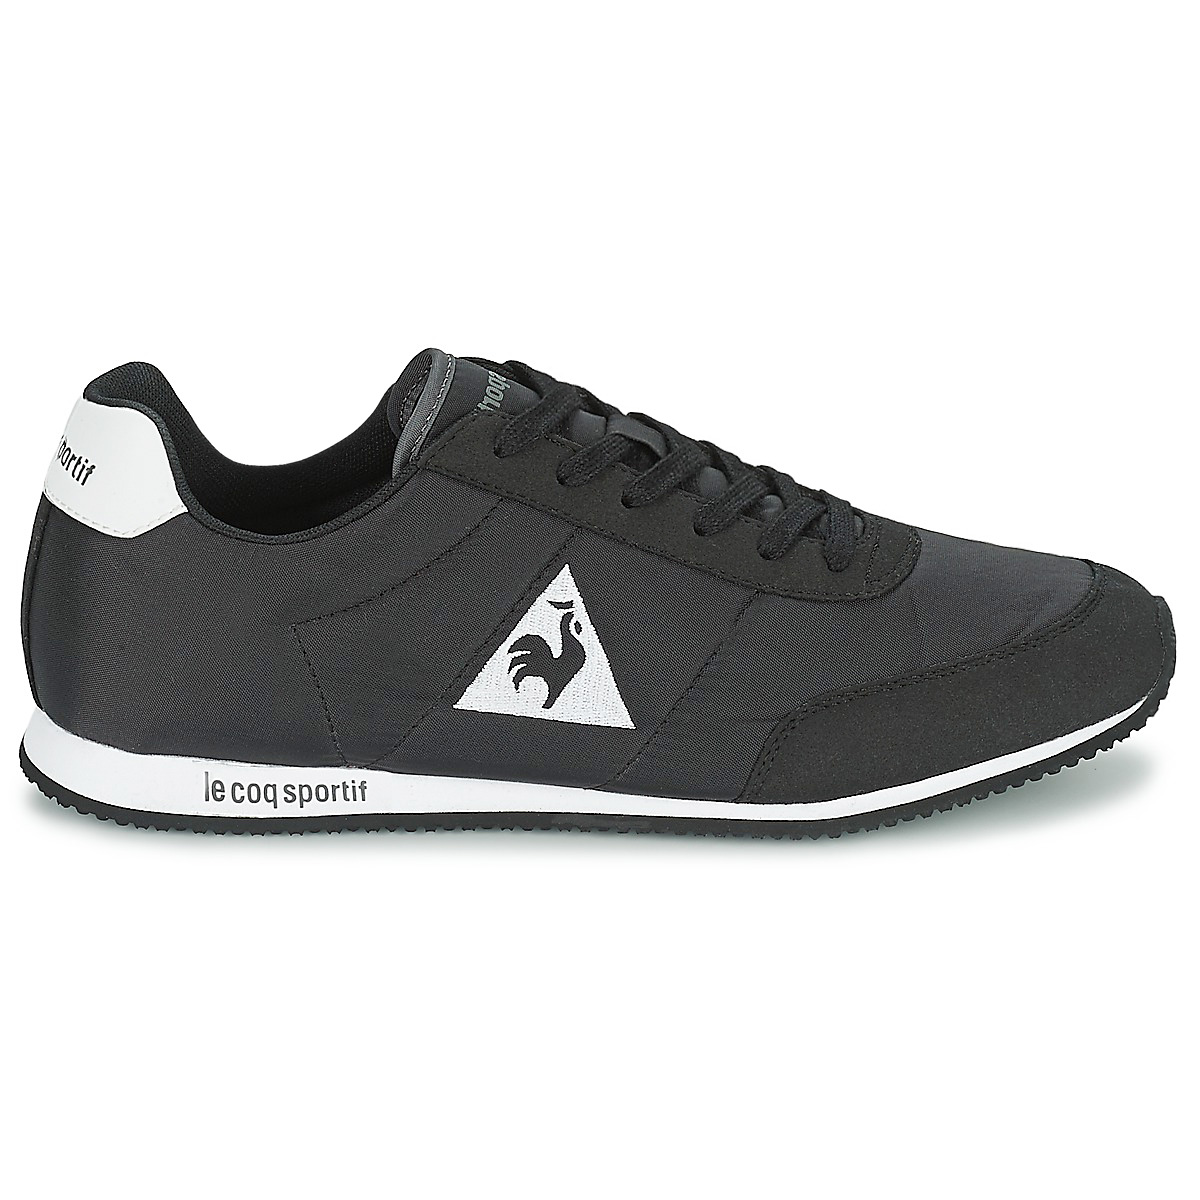 le coq sportif men racerone classic trainers sneakers. Black Bedroom Furniture Sets. Home Design Ideas